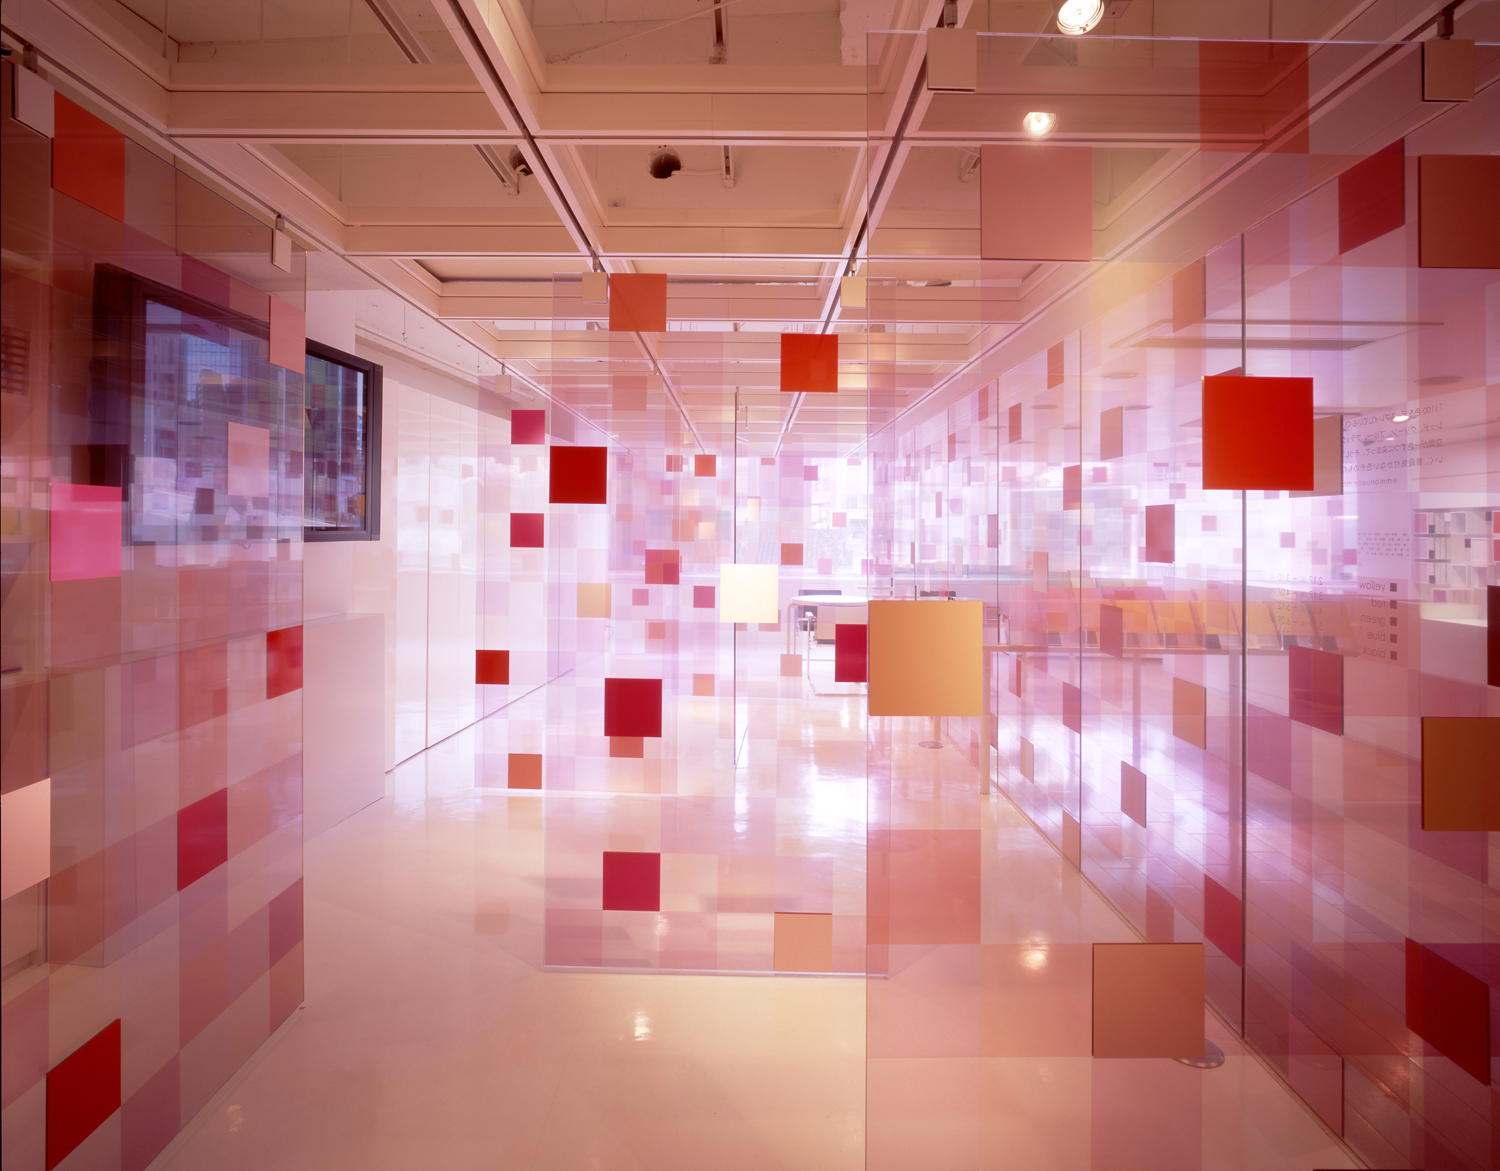 emmanuelle moureaux architecture + design — all